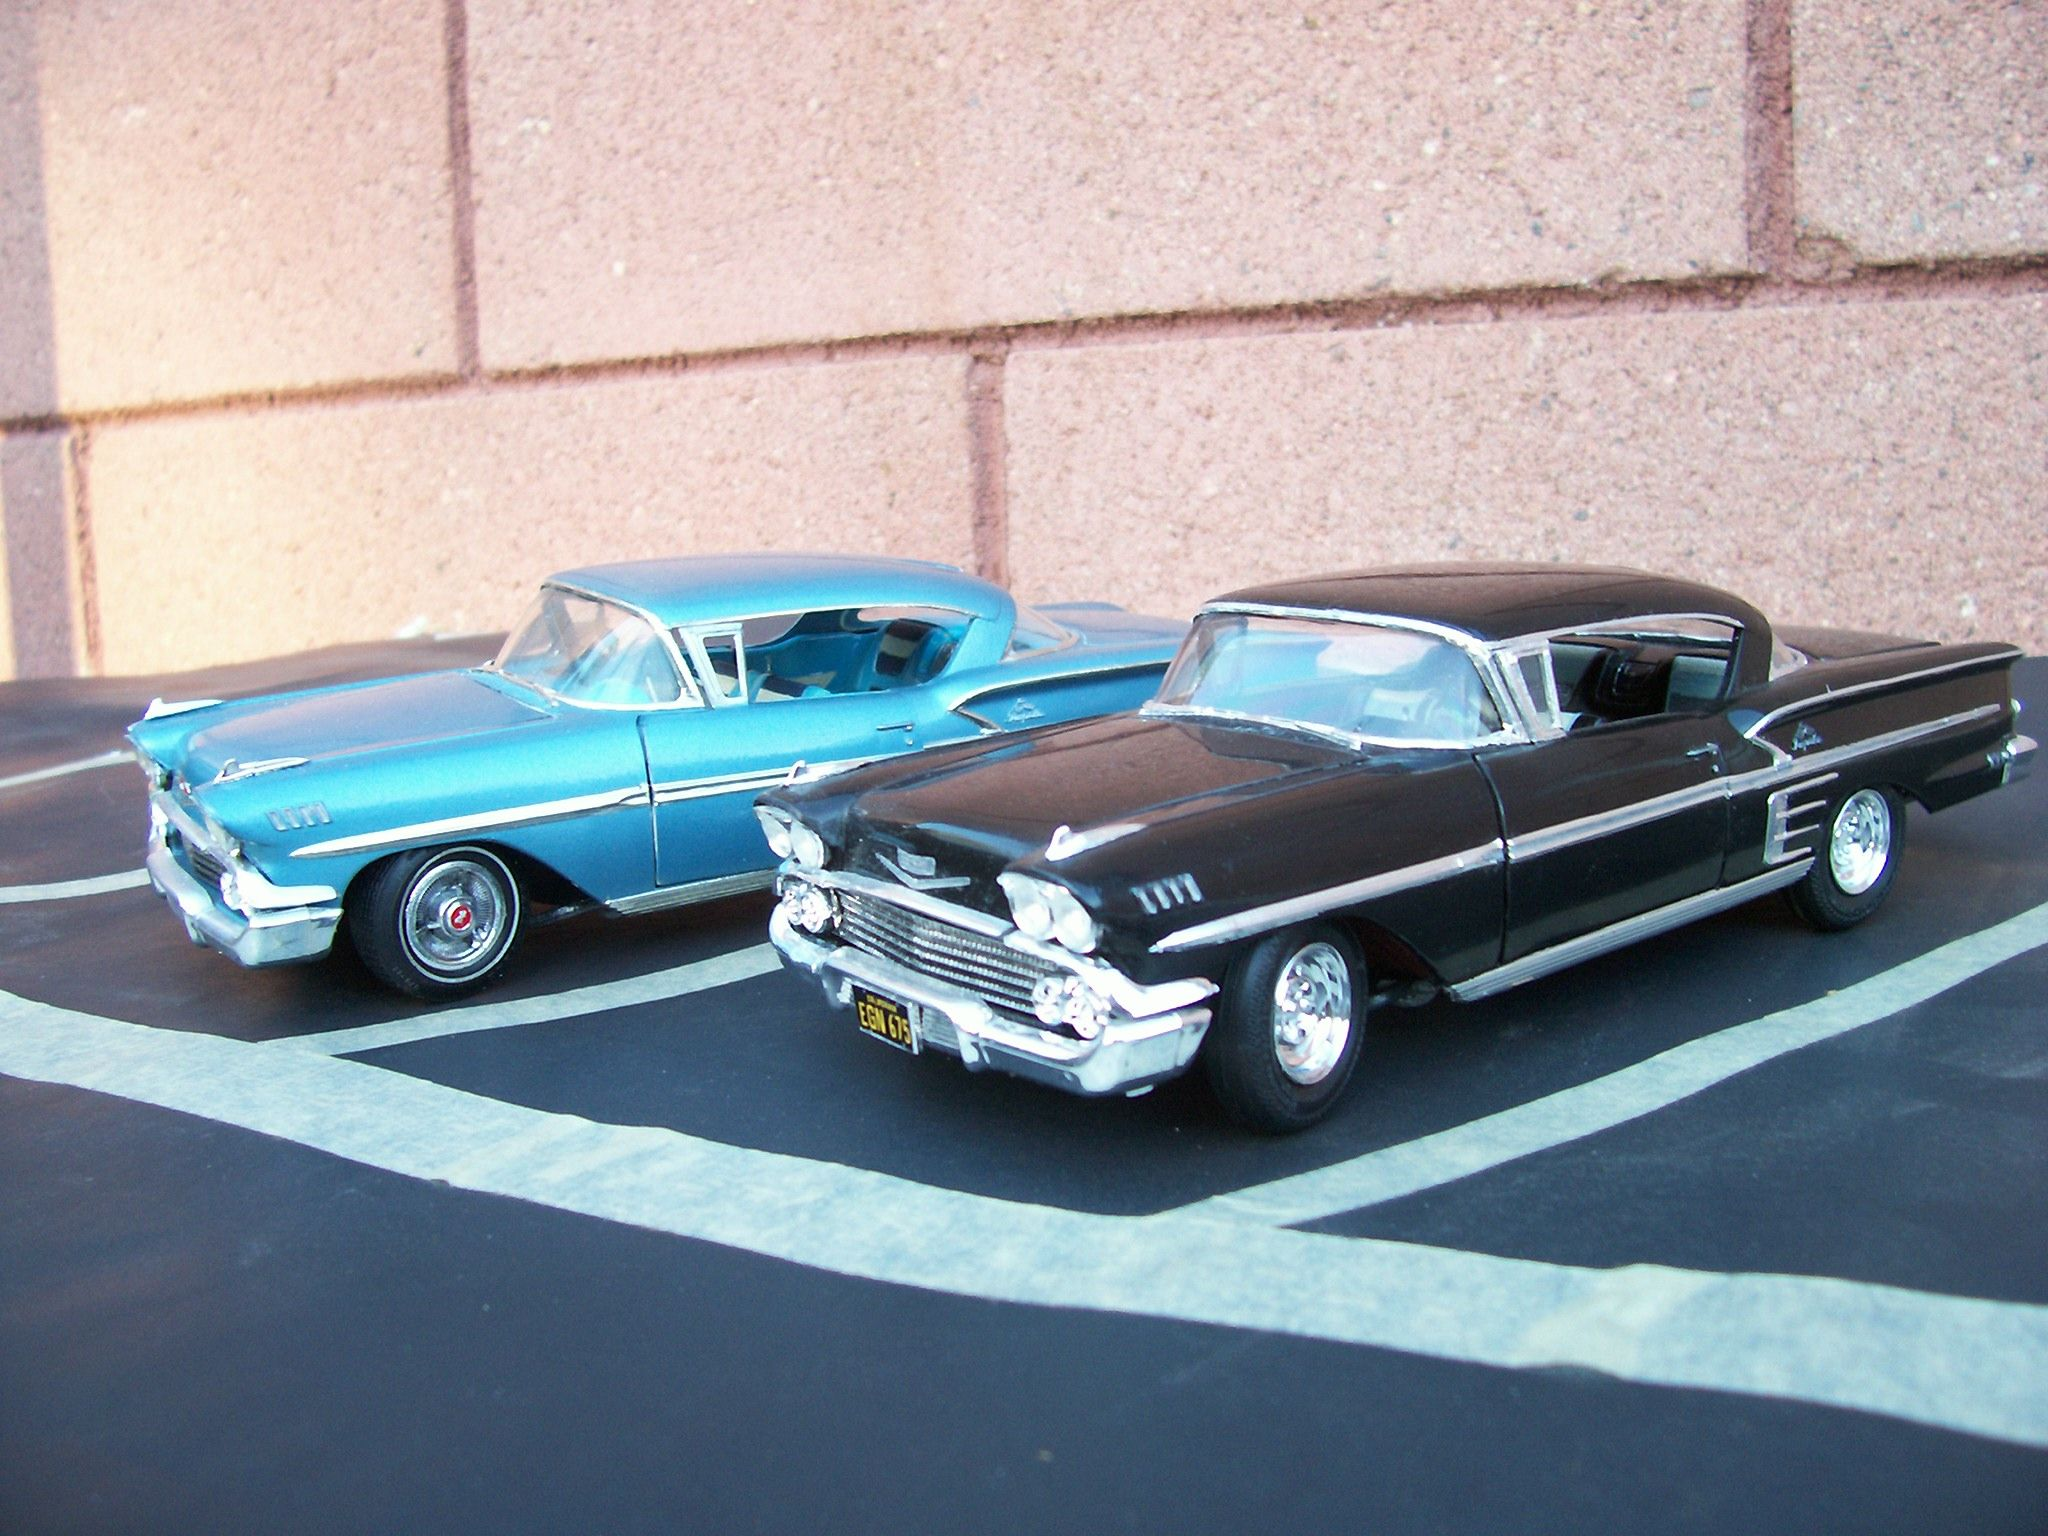 1958 Chevy Impala 1 25 Scale Model Cars Built From Amt Model Car